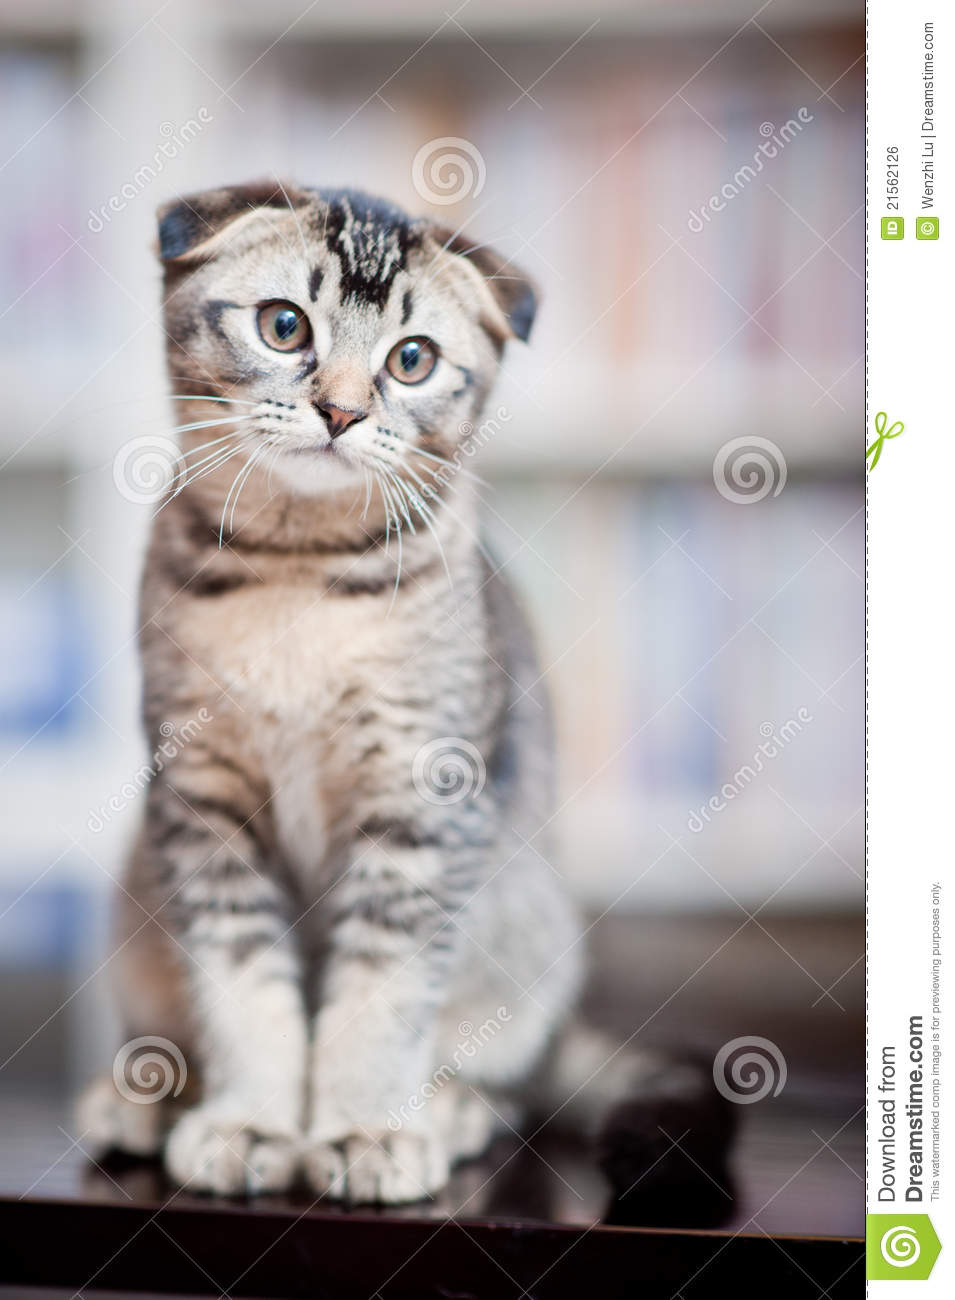 American Shorthair Cat Royalty Free Stock Image - Image: 21562126 Smiling Dog And Cat